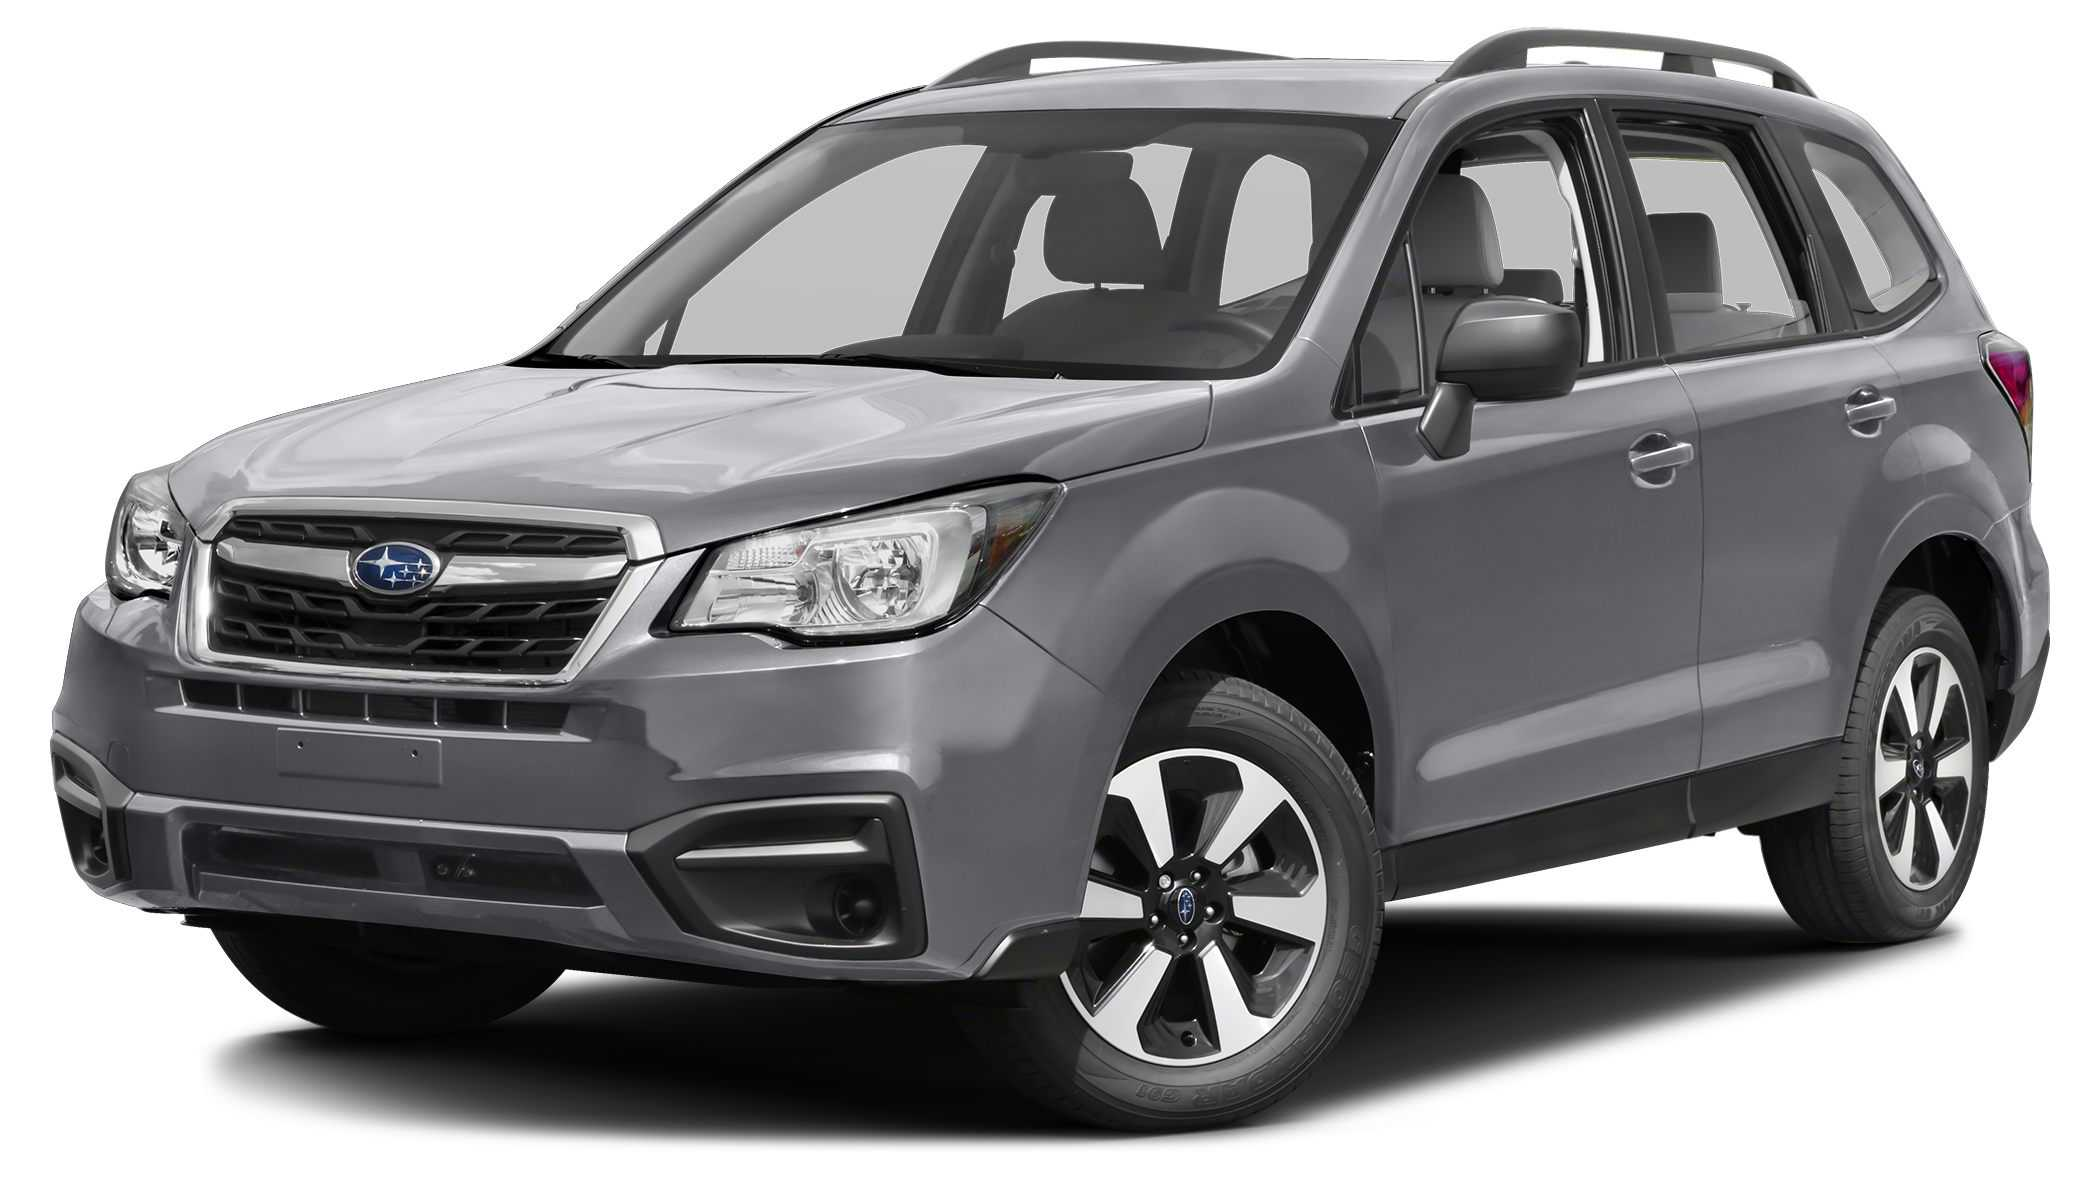 2017 subaru forester for sale in manchester nh. Black Bedroom Furniture Sets. Home Design Ideas